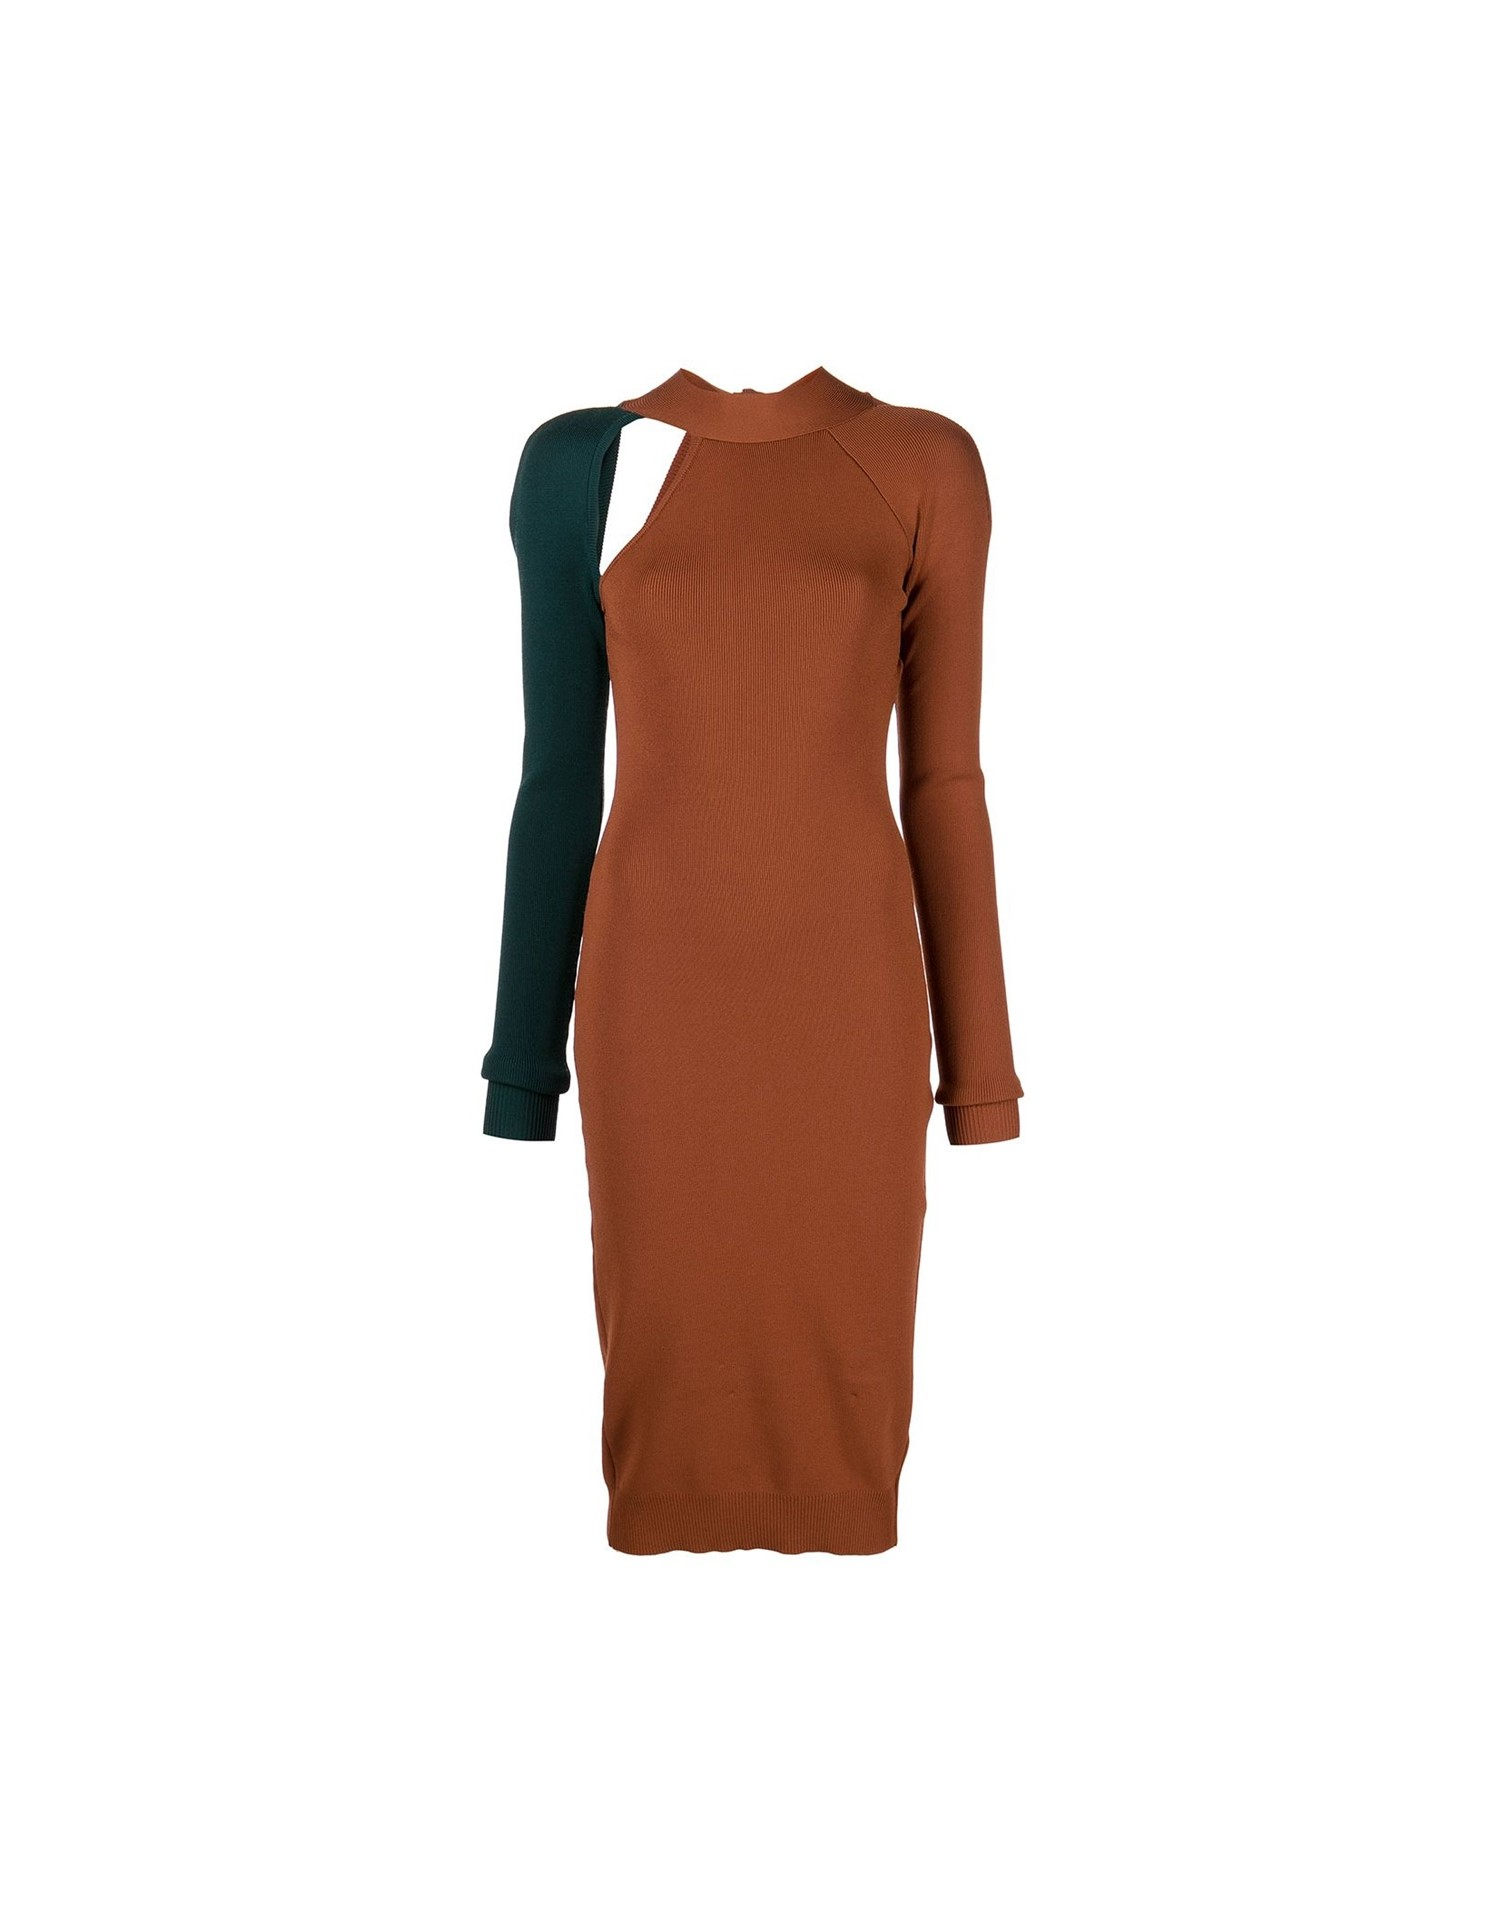 MONSE Bi Color Tie Back Knit Dress in Cognac and Forest on Model Full Side View